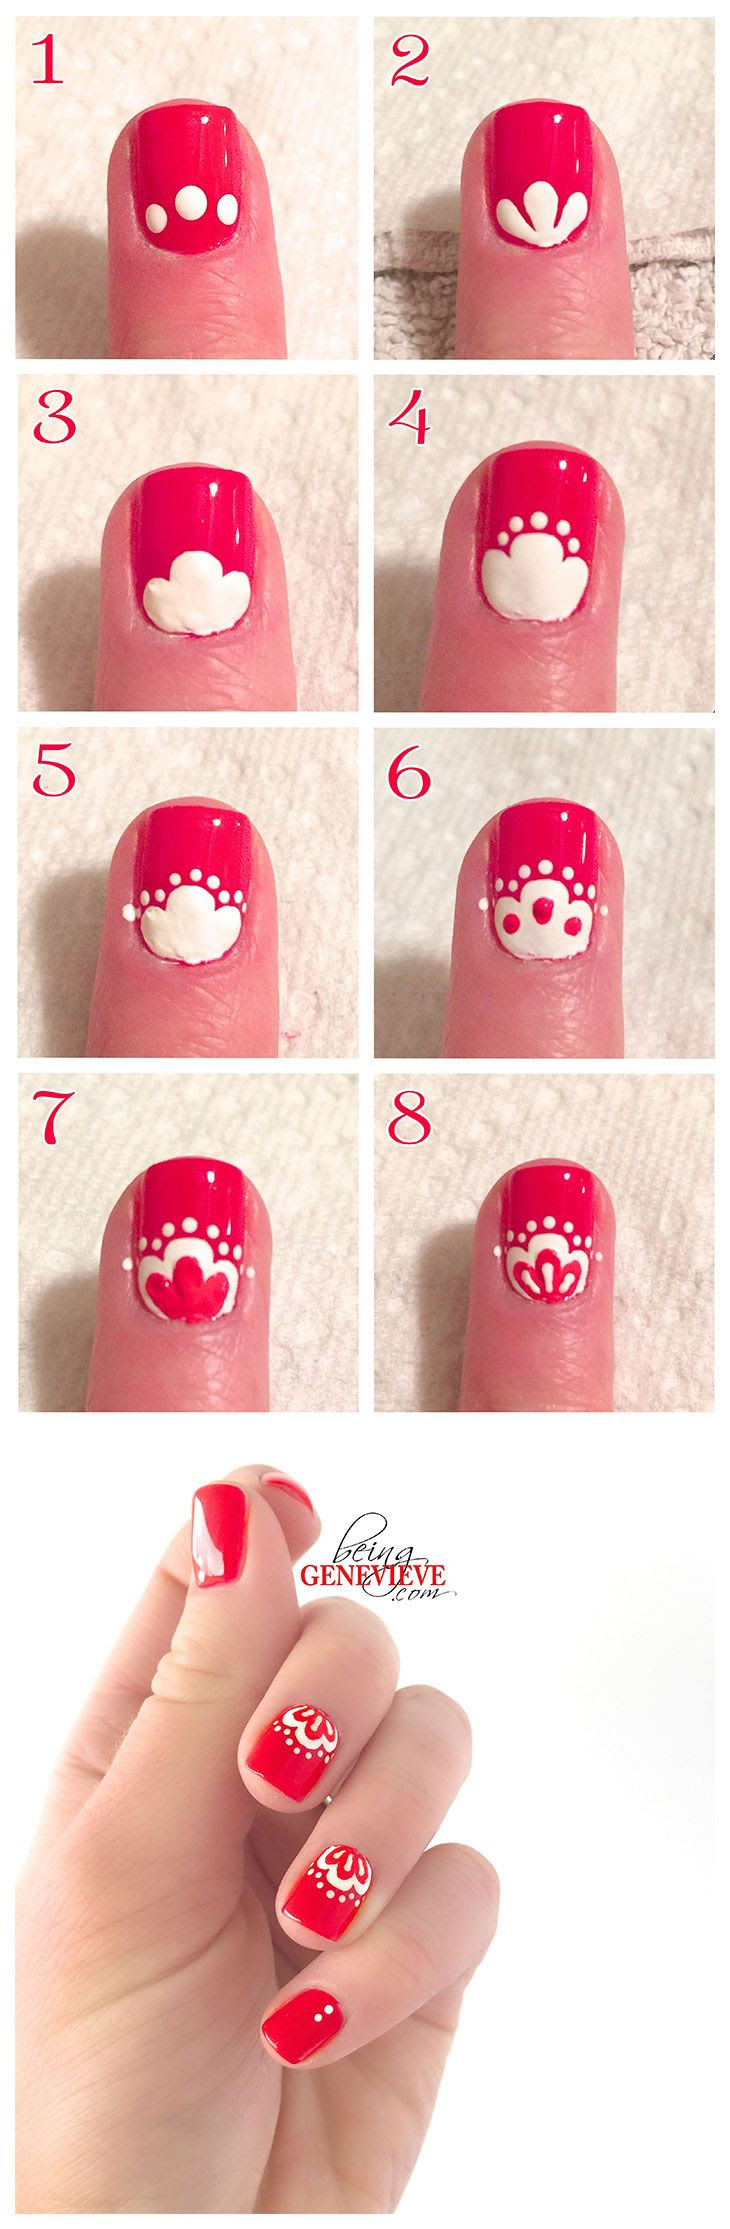 25 Easy Step By Step Nail Tutorials For Girls Pretty Designs